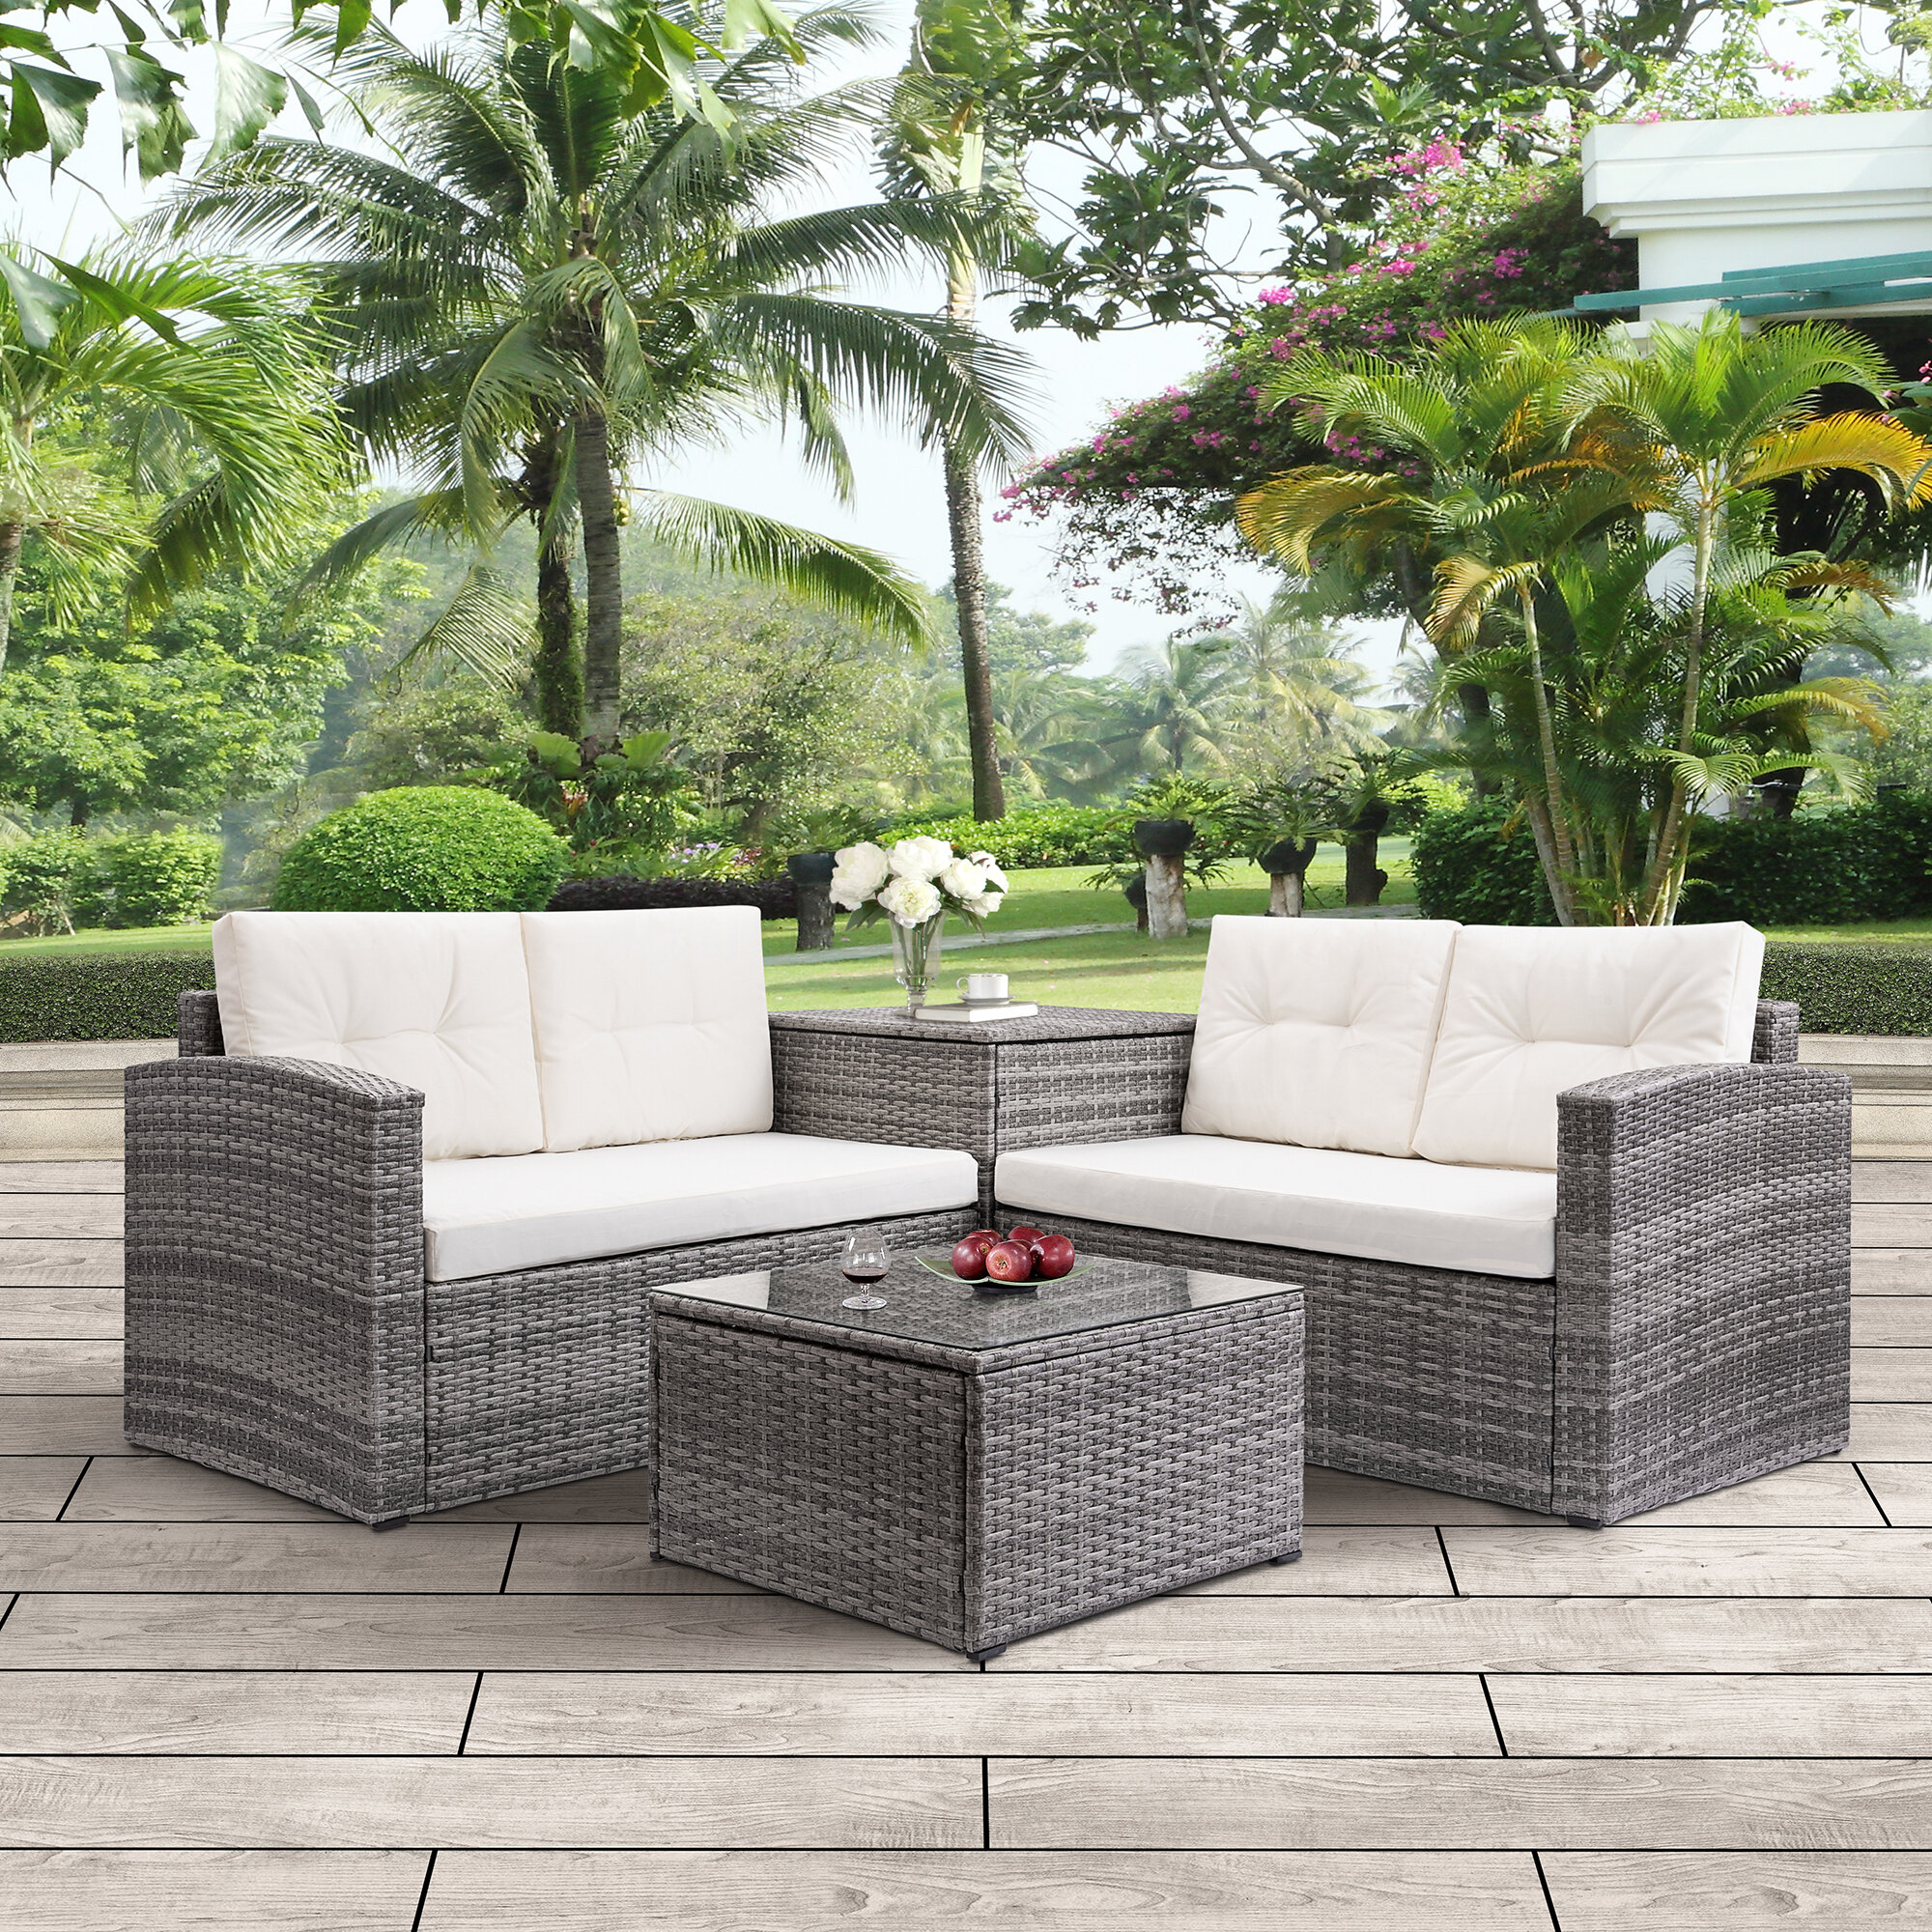 Wrought Studio Breed 4 Piece Rattan Sofa Seating Group With Cushions Reviews Wayfair